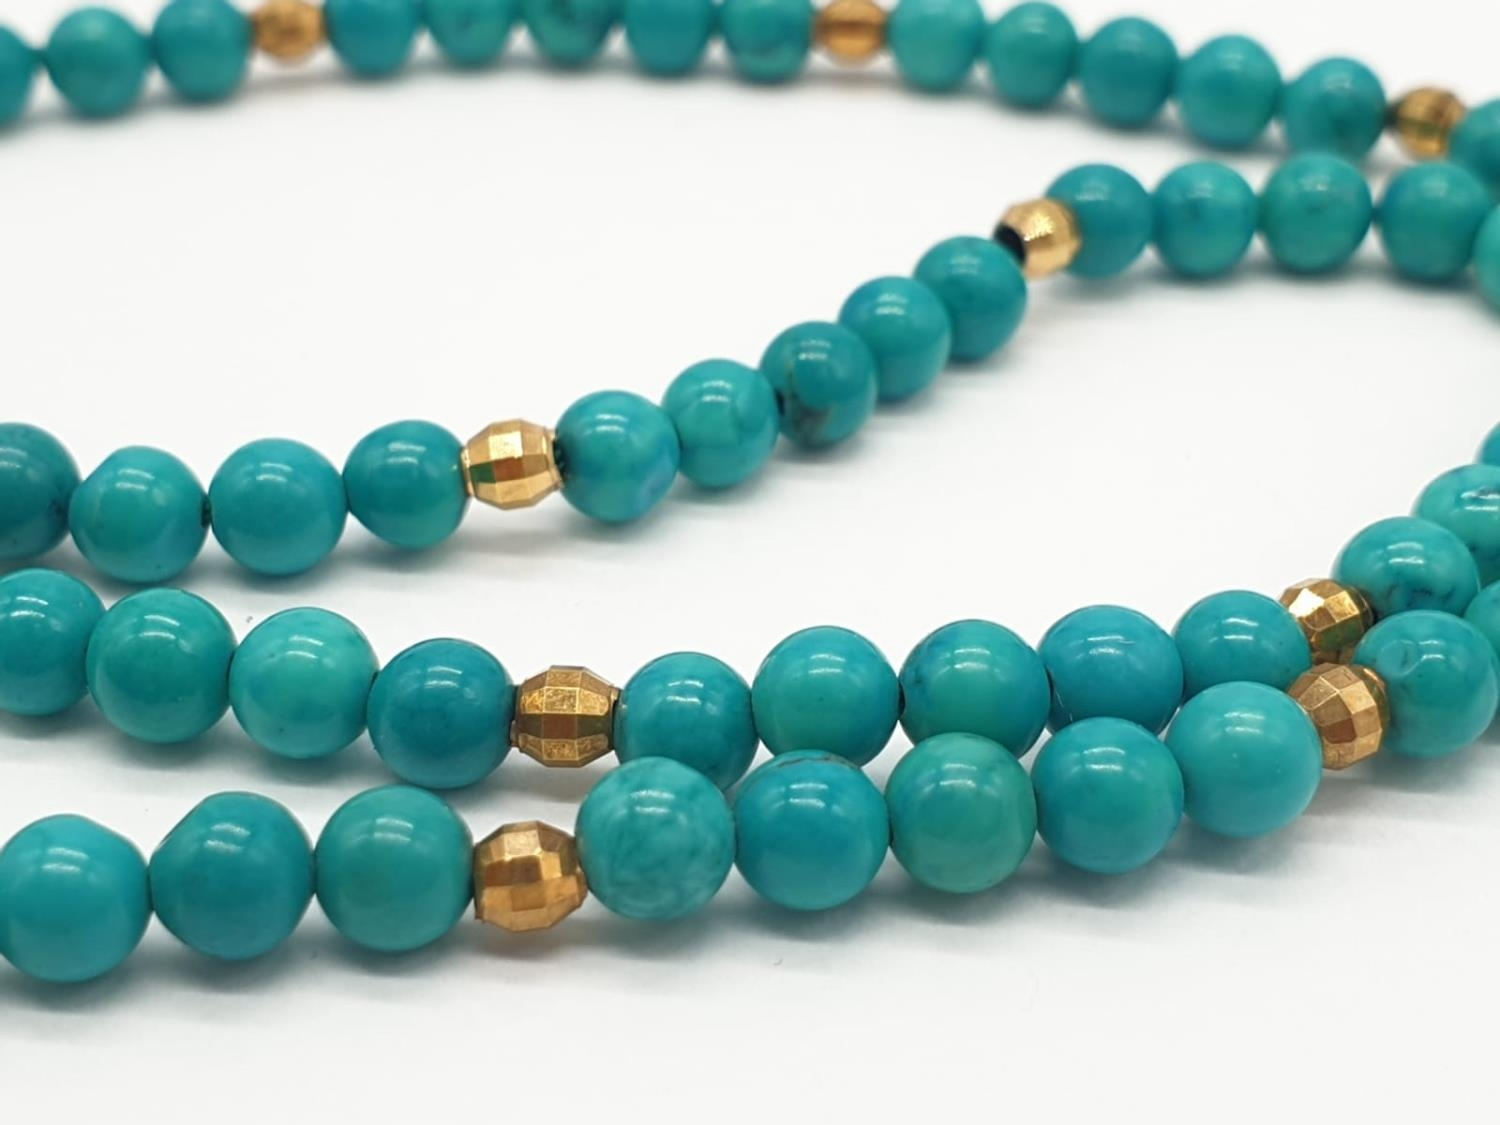 Turquoise and 9ct Gold NECKLACE. 10g 40cm - Image 3 of 5